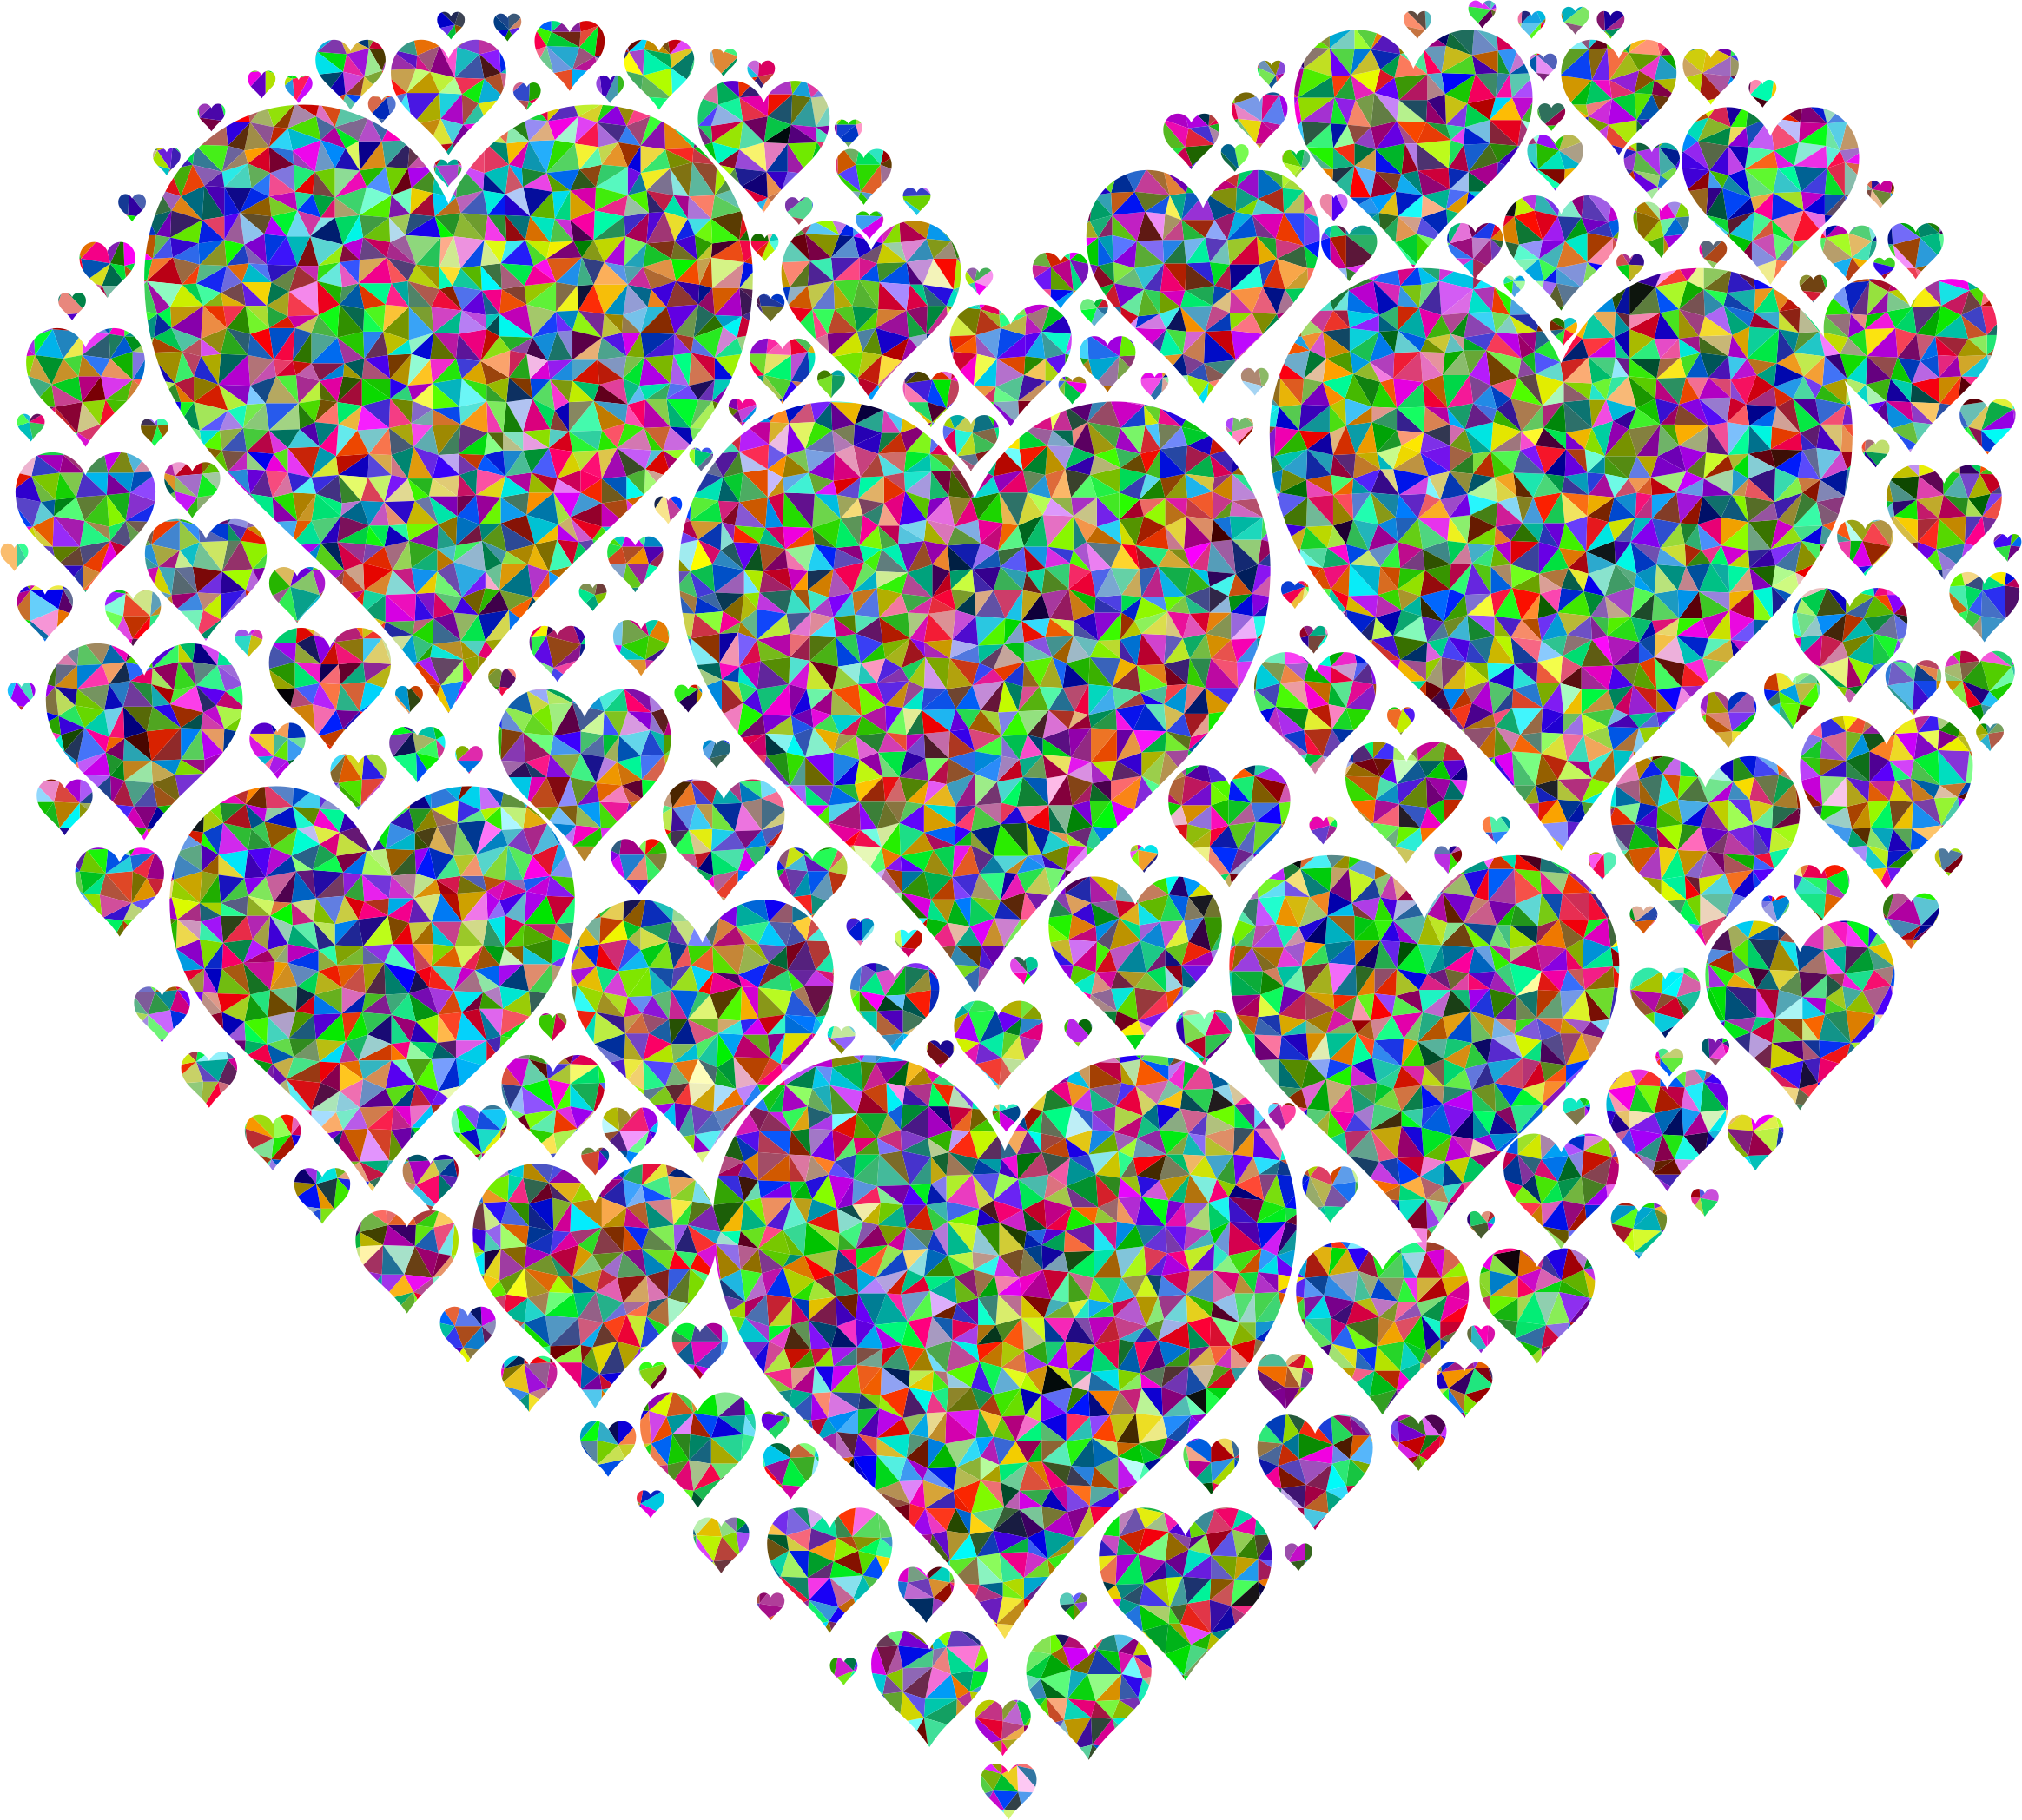 Old heart clipart svg library stock Clipart - Prismatic Low Poly Hearts In Heart Higher Detail svg library stock